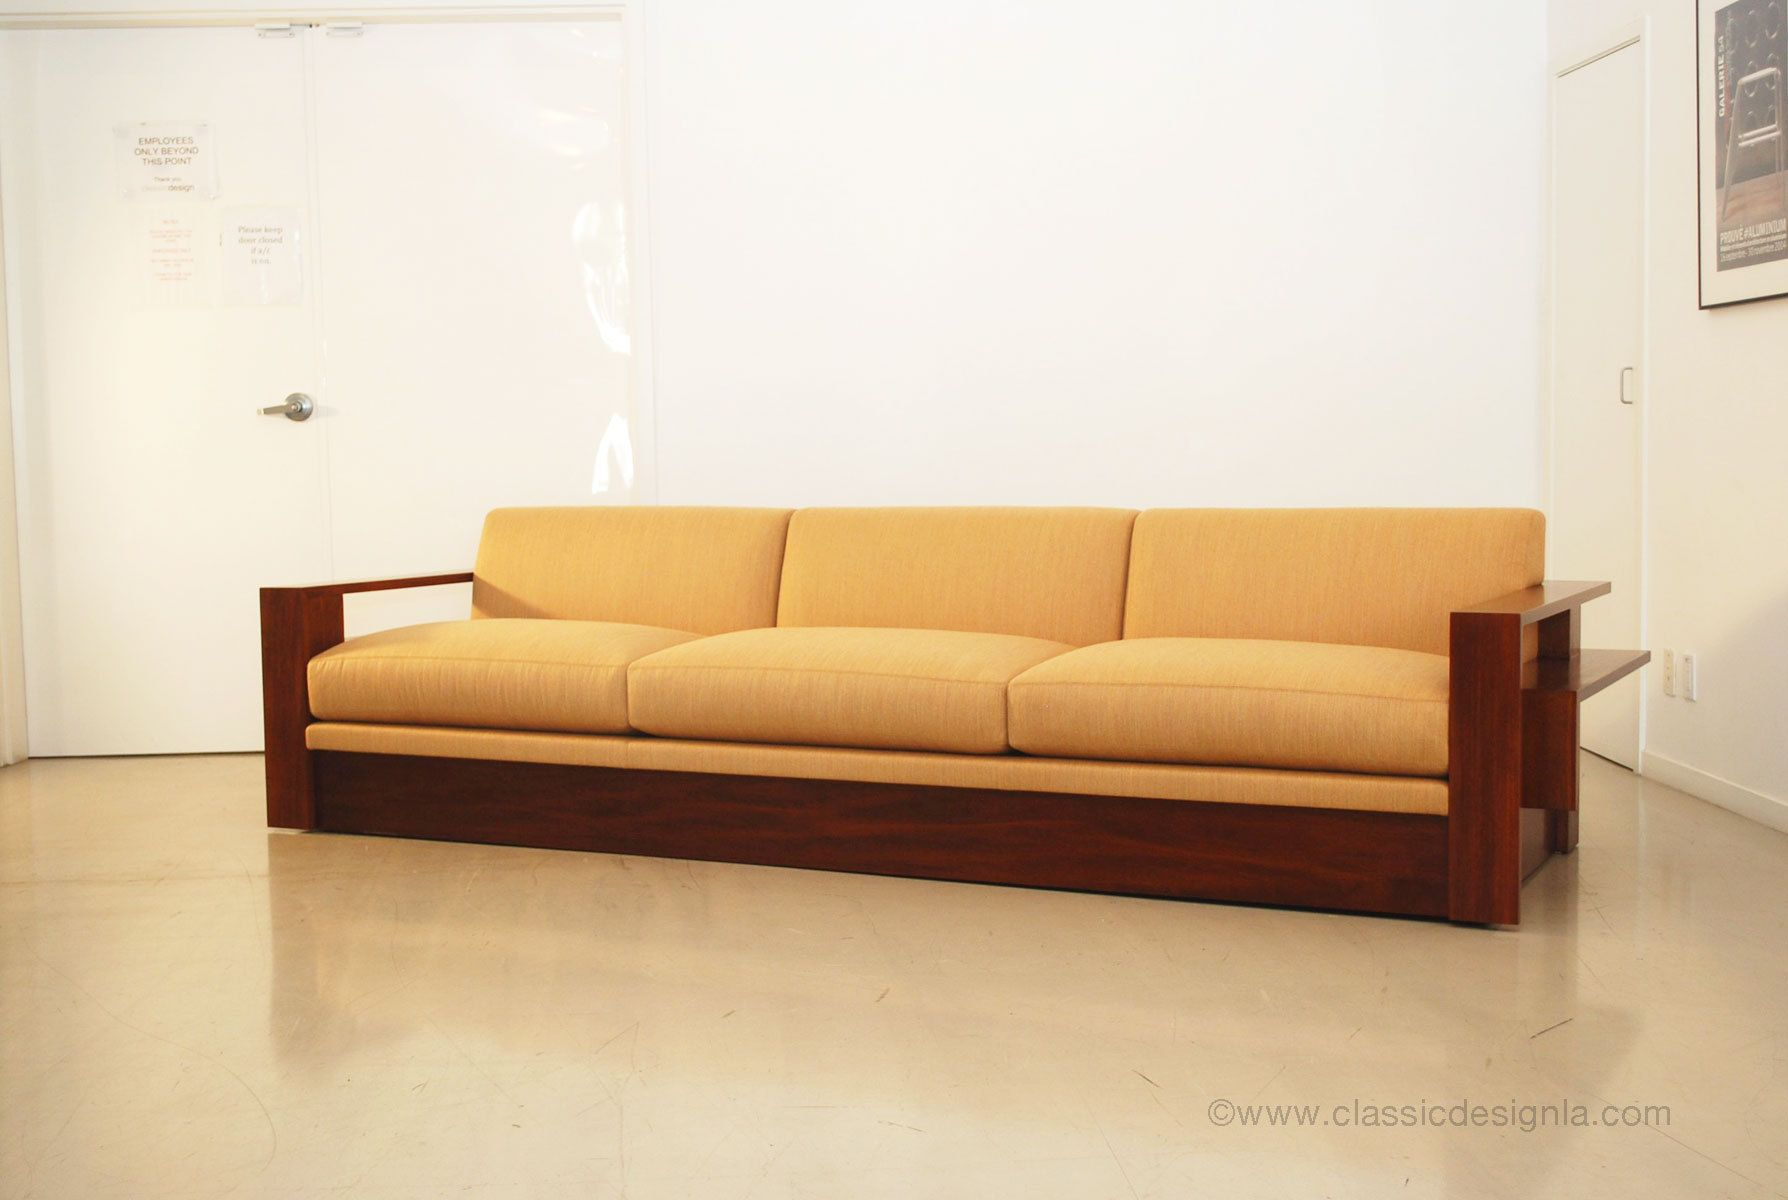 Custom Wood Frame Sofa Google Search Wood Frame Sofas Pinterest Custom Wood Woods And